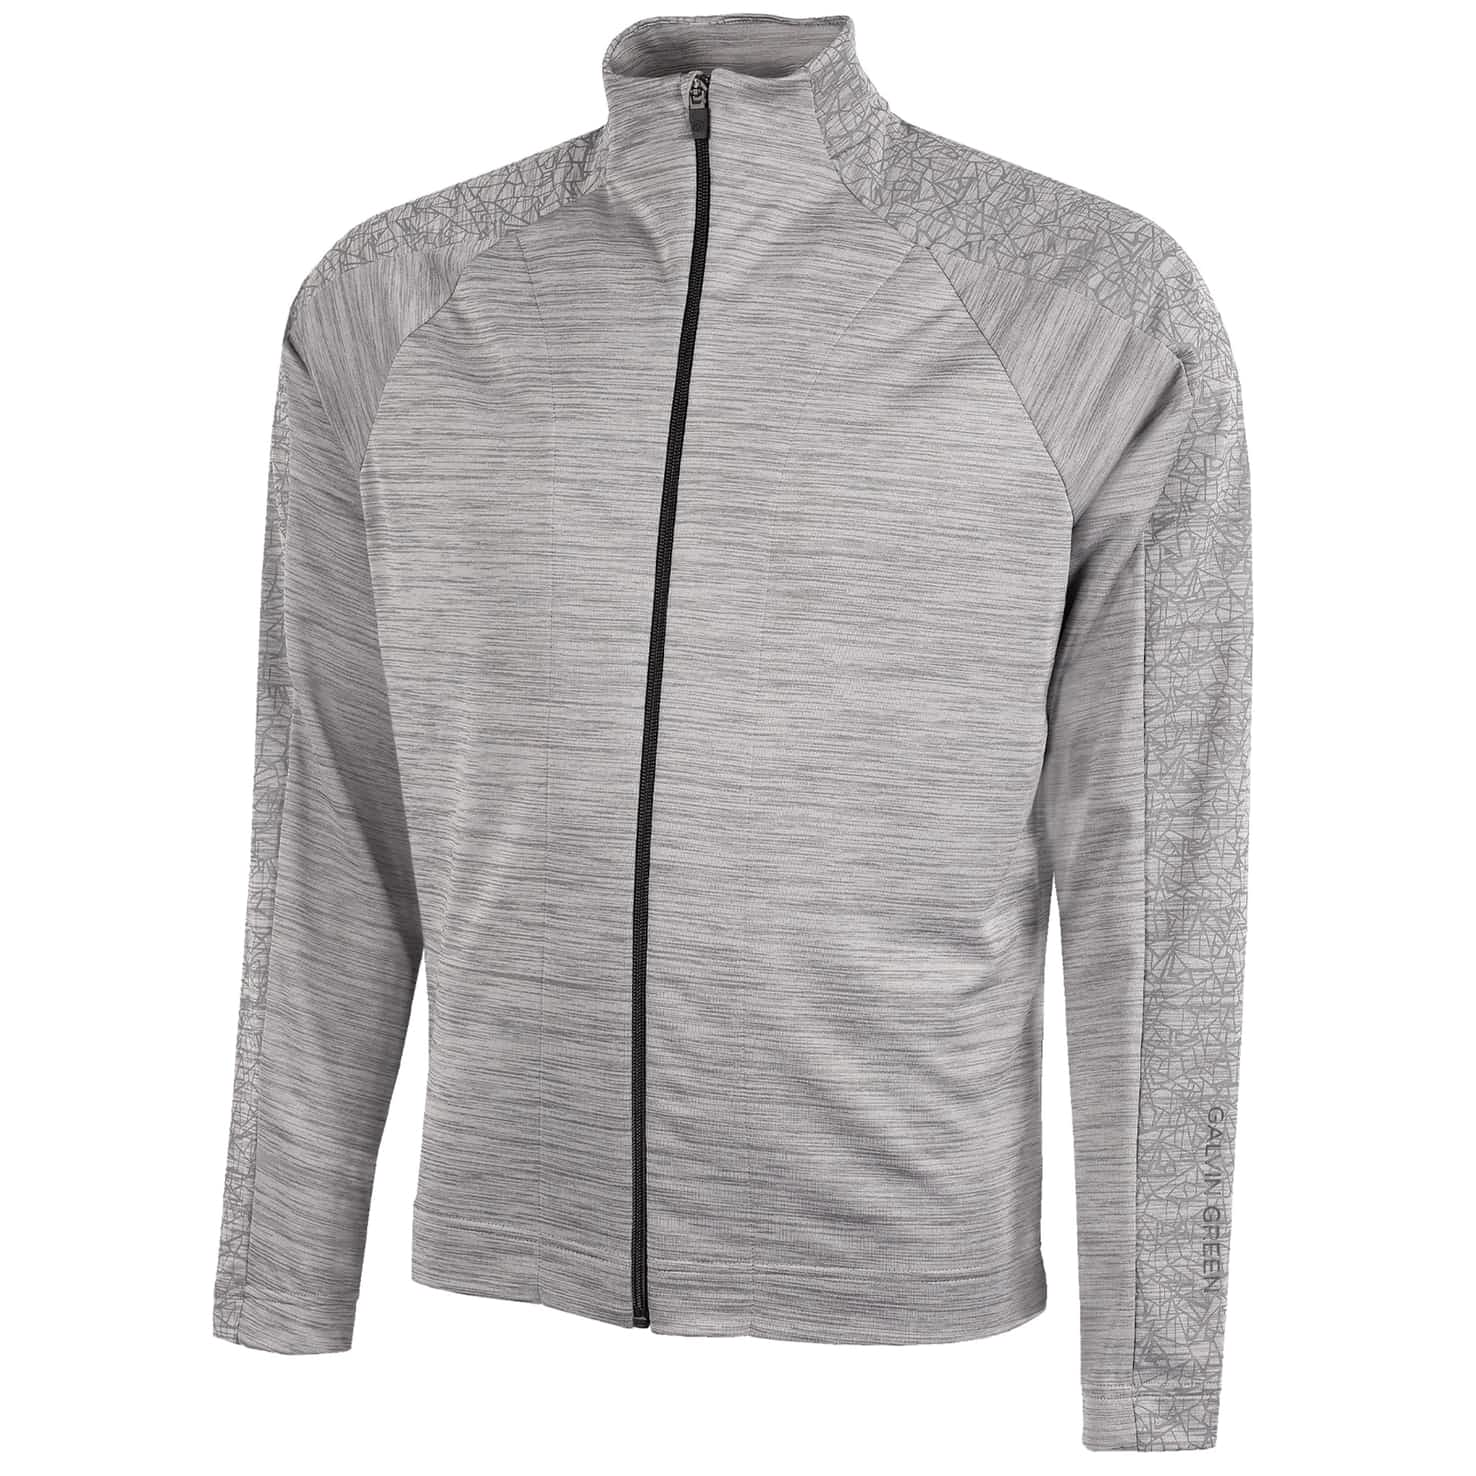 Declan Insula Full Zip Jacket Light Grey - SS20